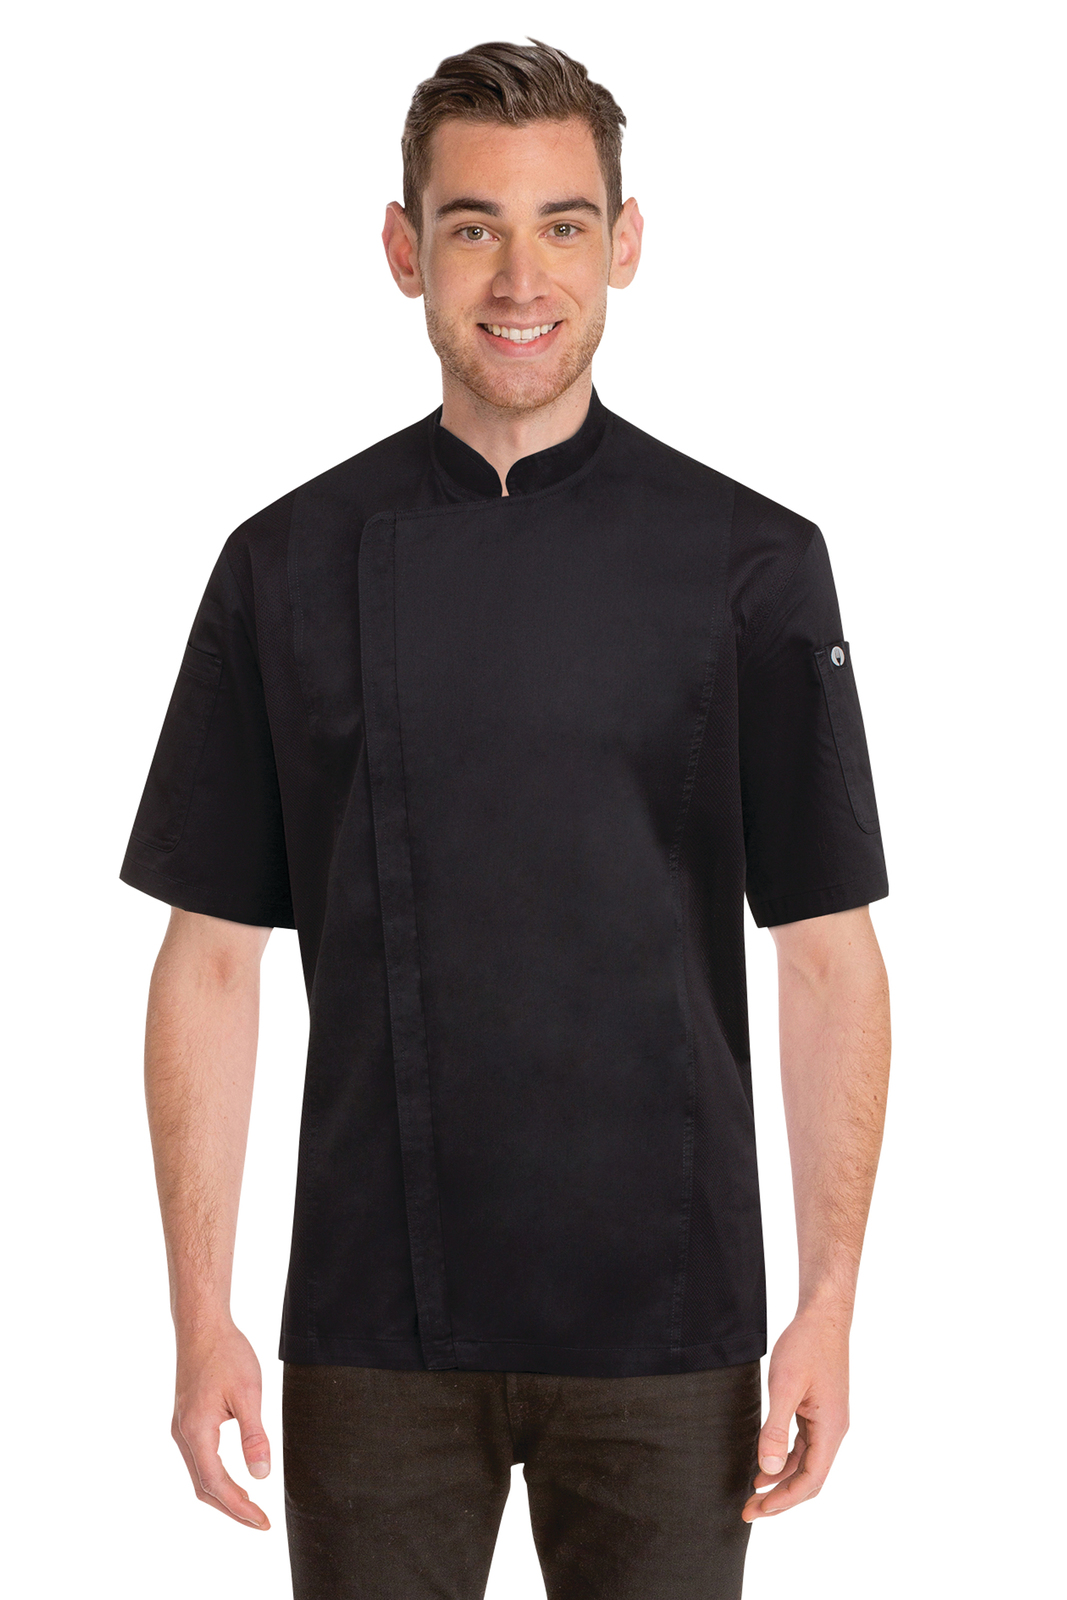 Chef Works Springfield Mens Black Zipper Chef Jacket